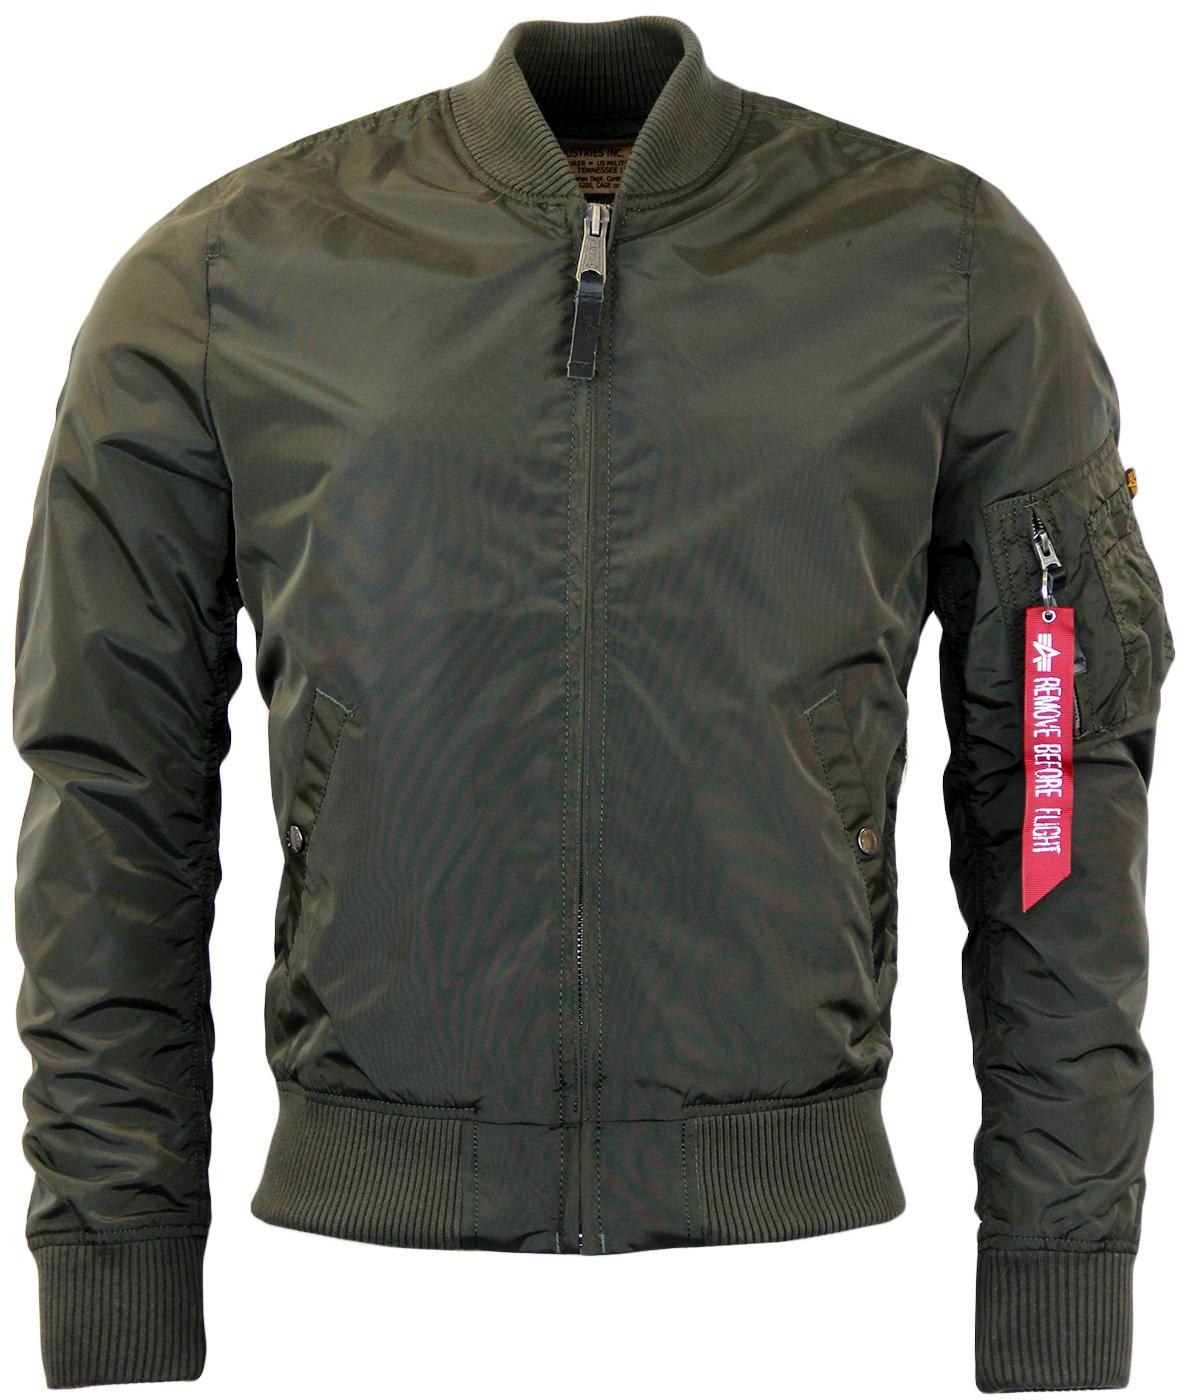 MA1 TT ALPHA INDUSTRIES Retro Mod Bomber Jacket RG